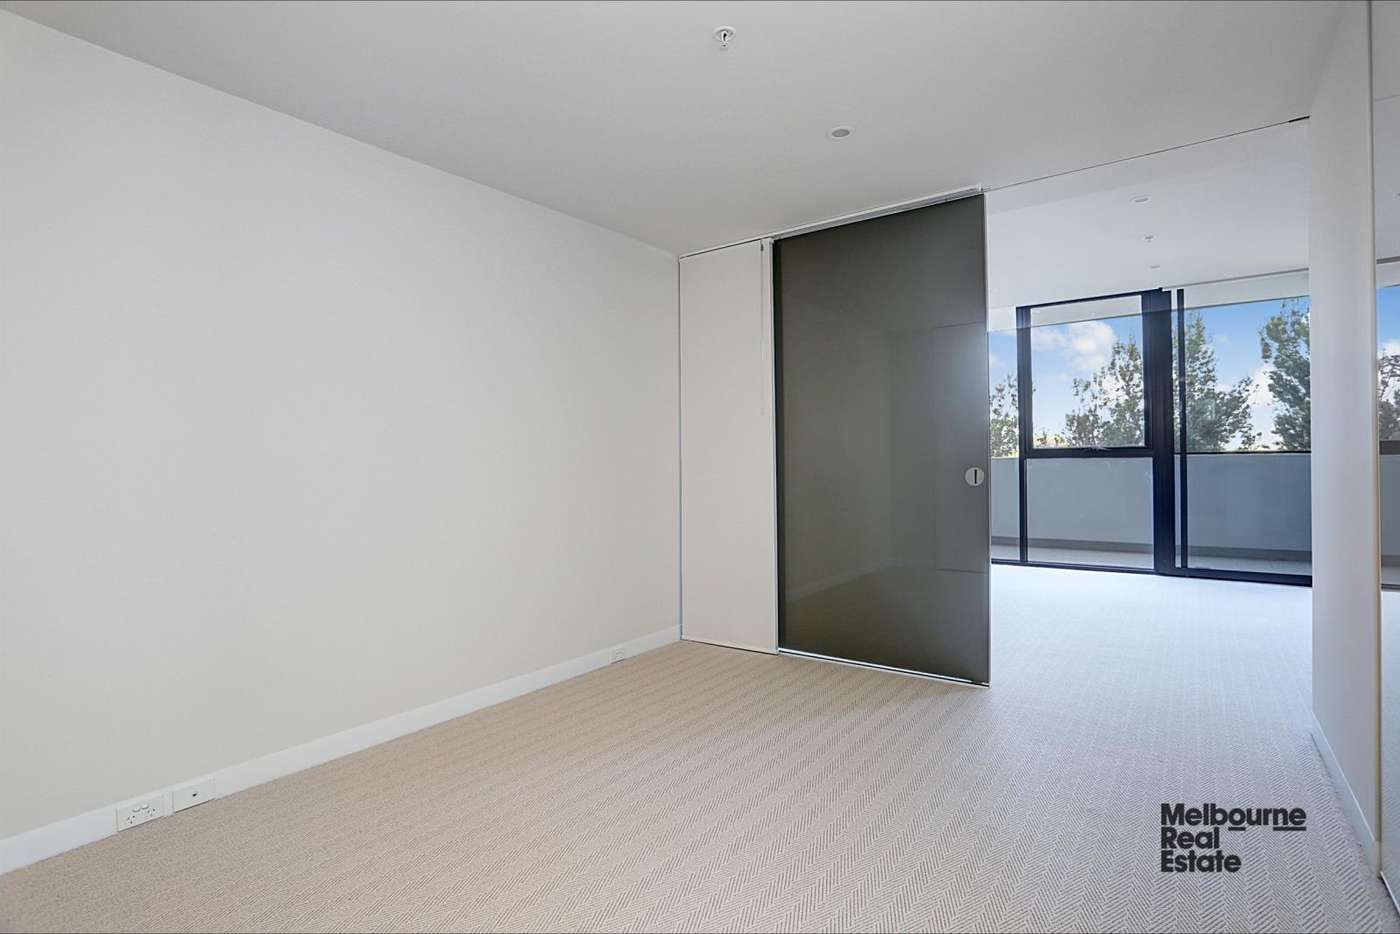 Sixth view of Homely apartment listing, 307/72 Wests Road, Maribyrnong VIC 3032